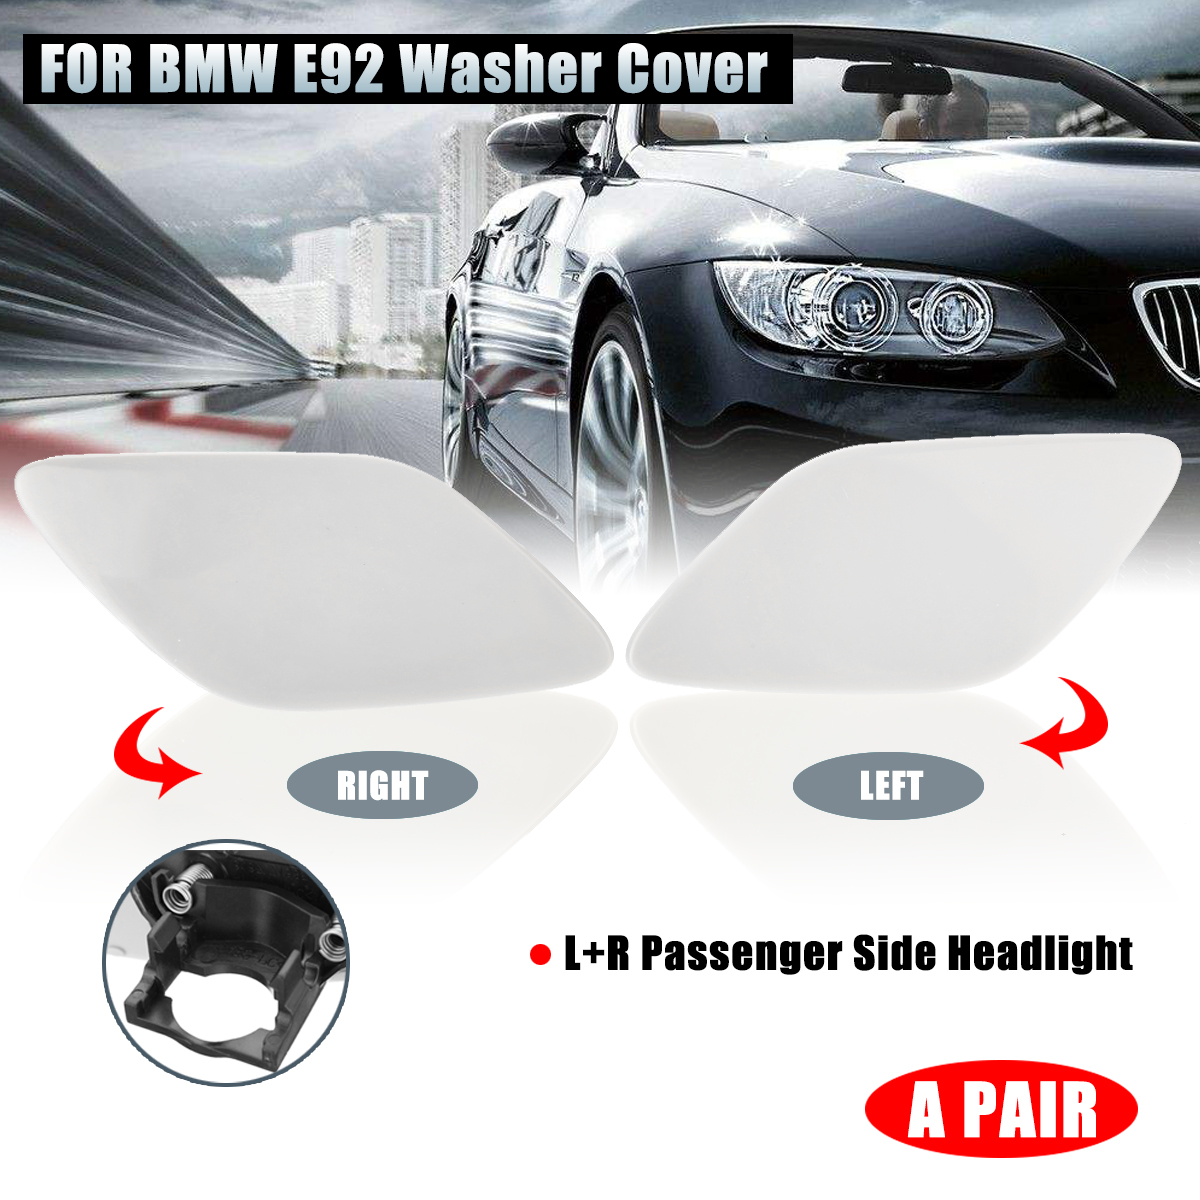 For BMW E92 E93 3 Series 05-10 Pair L+R Passenger Side Headlight Washer Cover